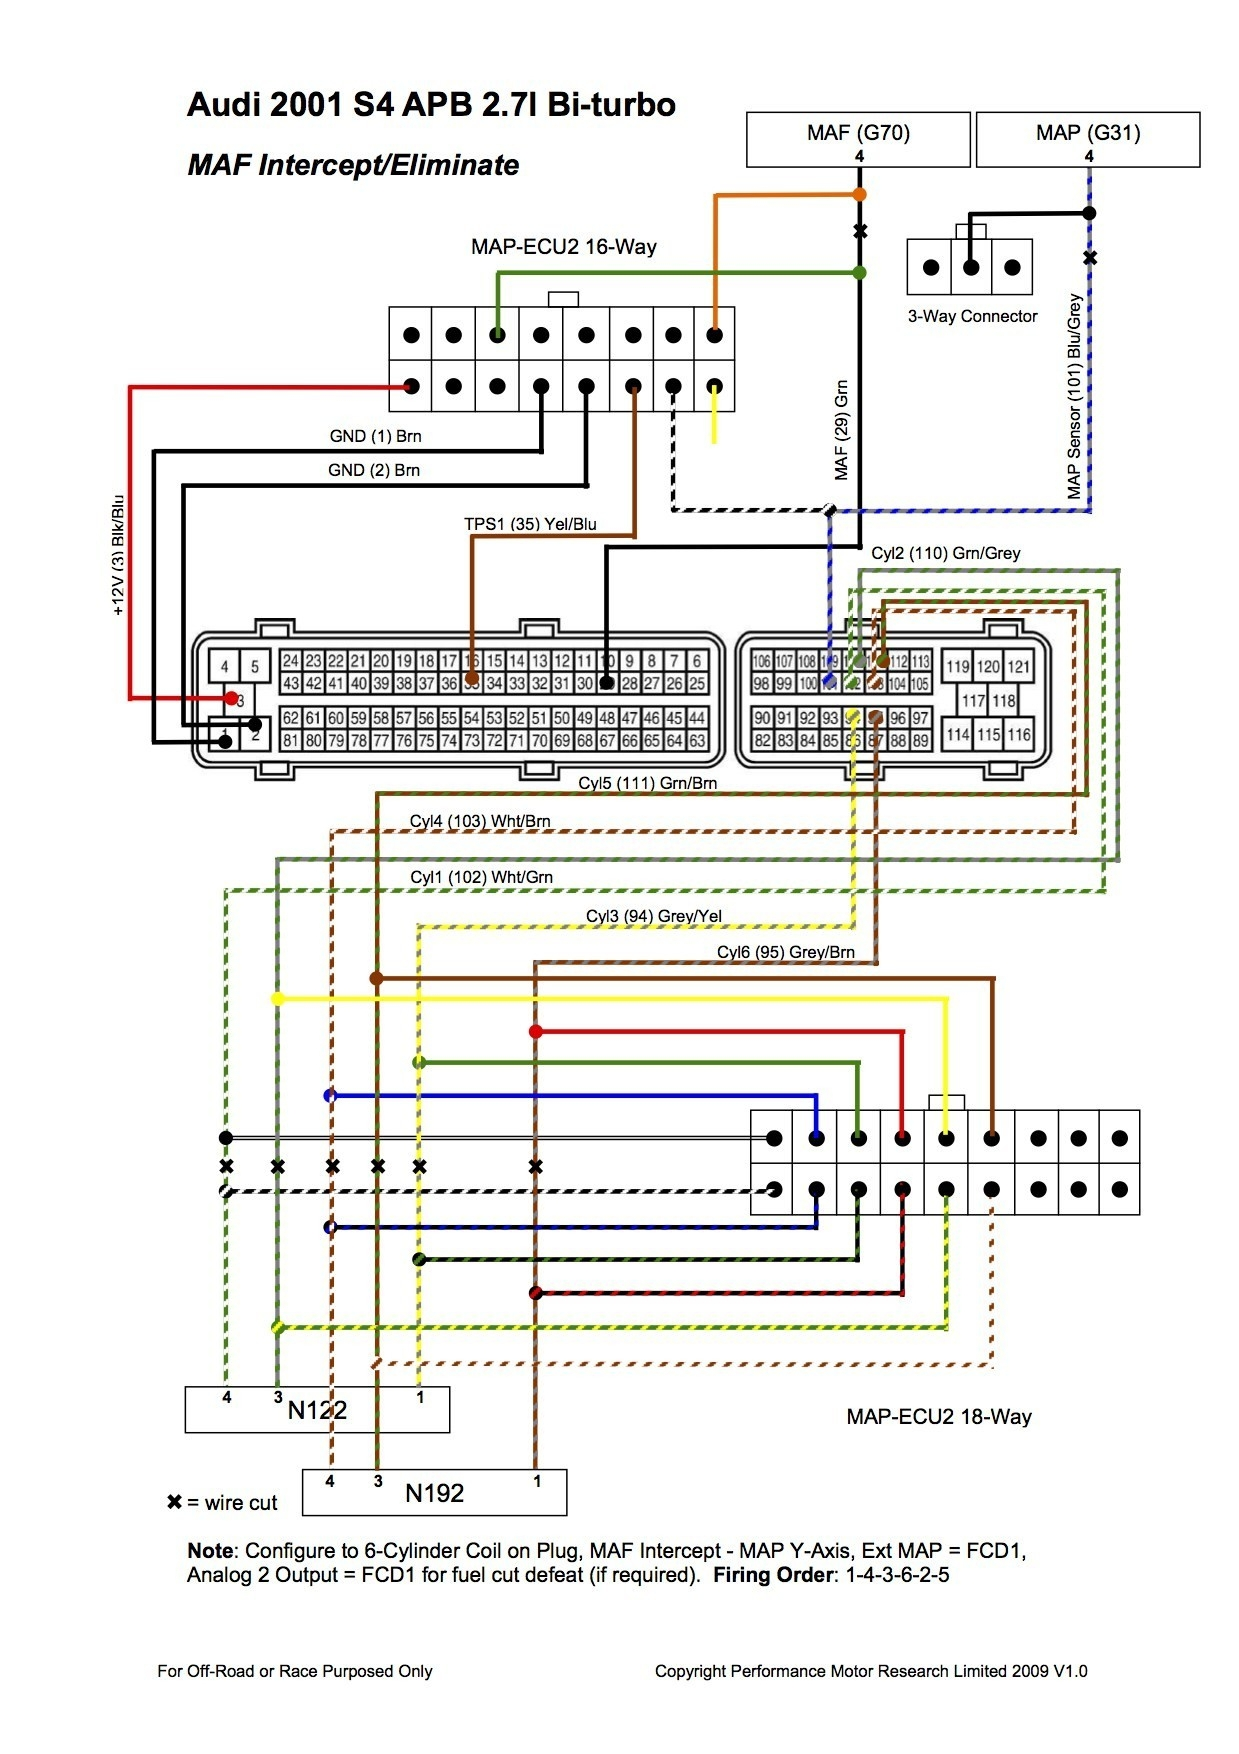 Mitsubishi Eclipse Radio Wiring Diagram - Wiring Diagram for Mitsubishi Lancer Glxi Fresh 1997 Mitsubishi attractive Mitsubishi Eclipse Wiring Harness Diagram 15q